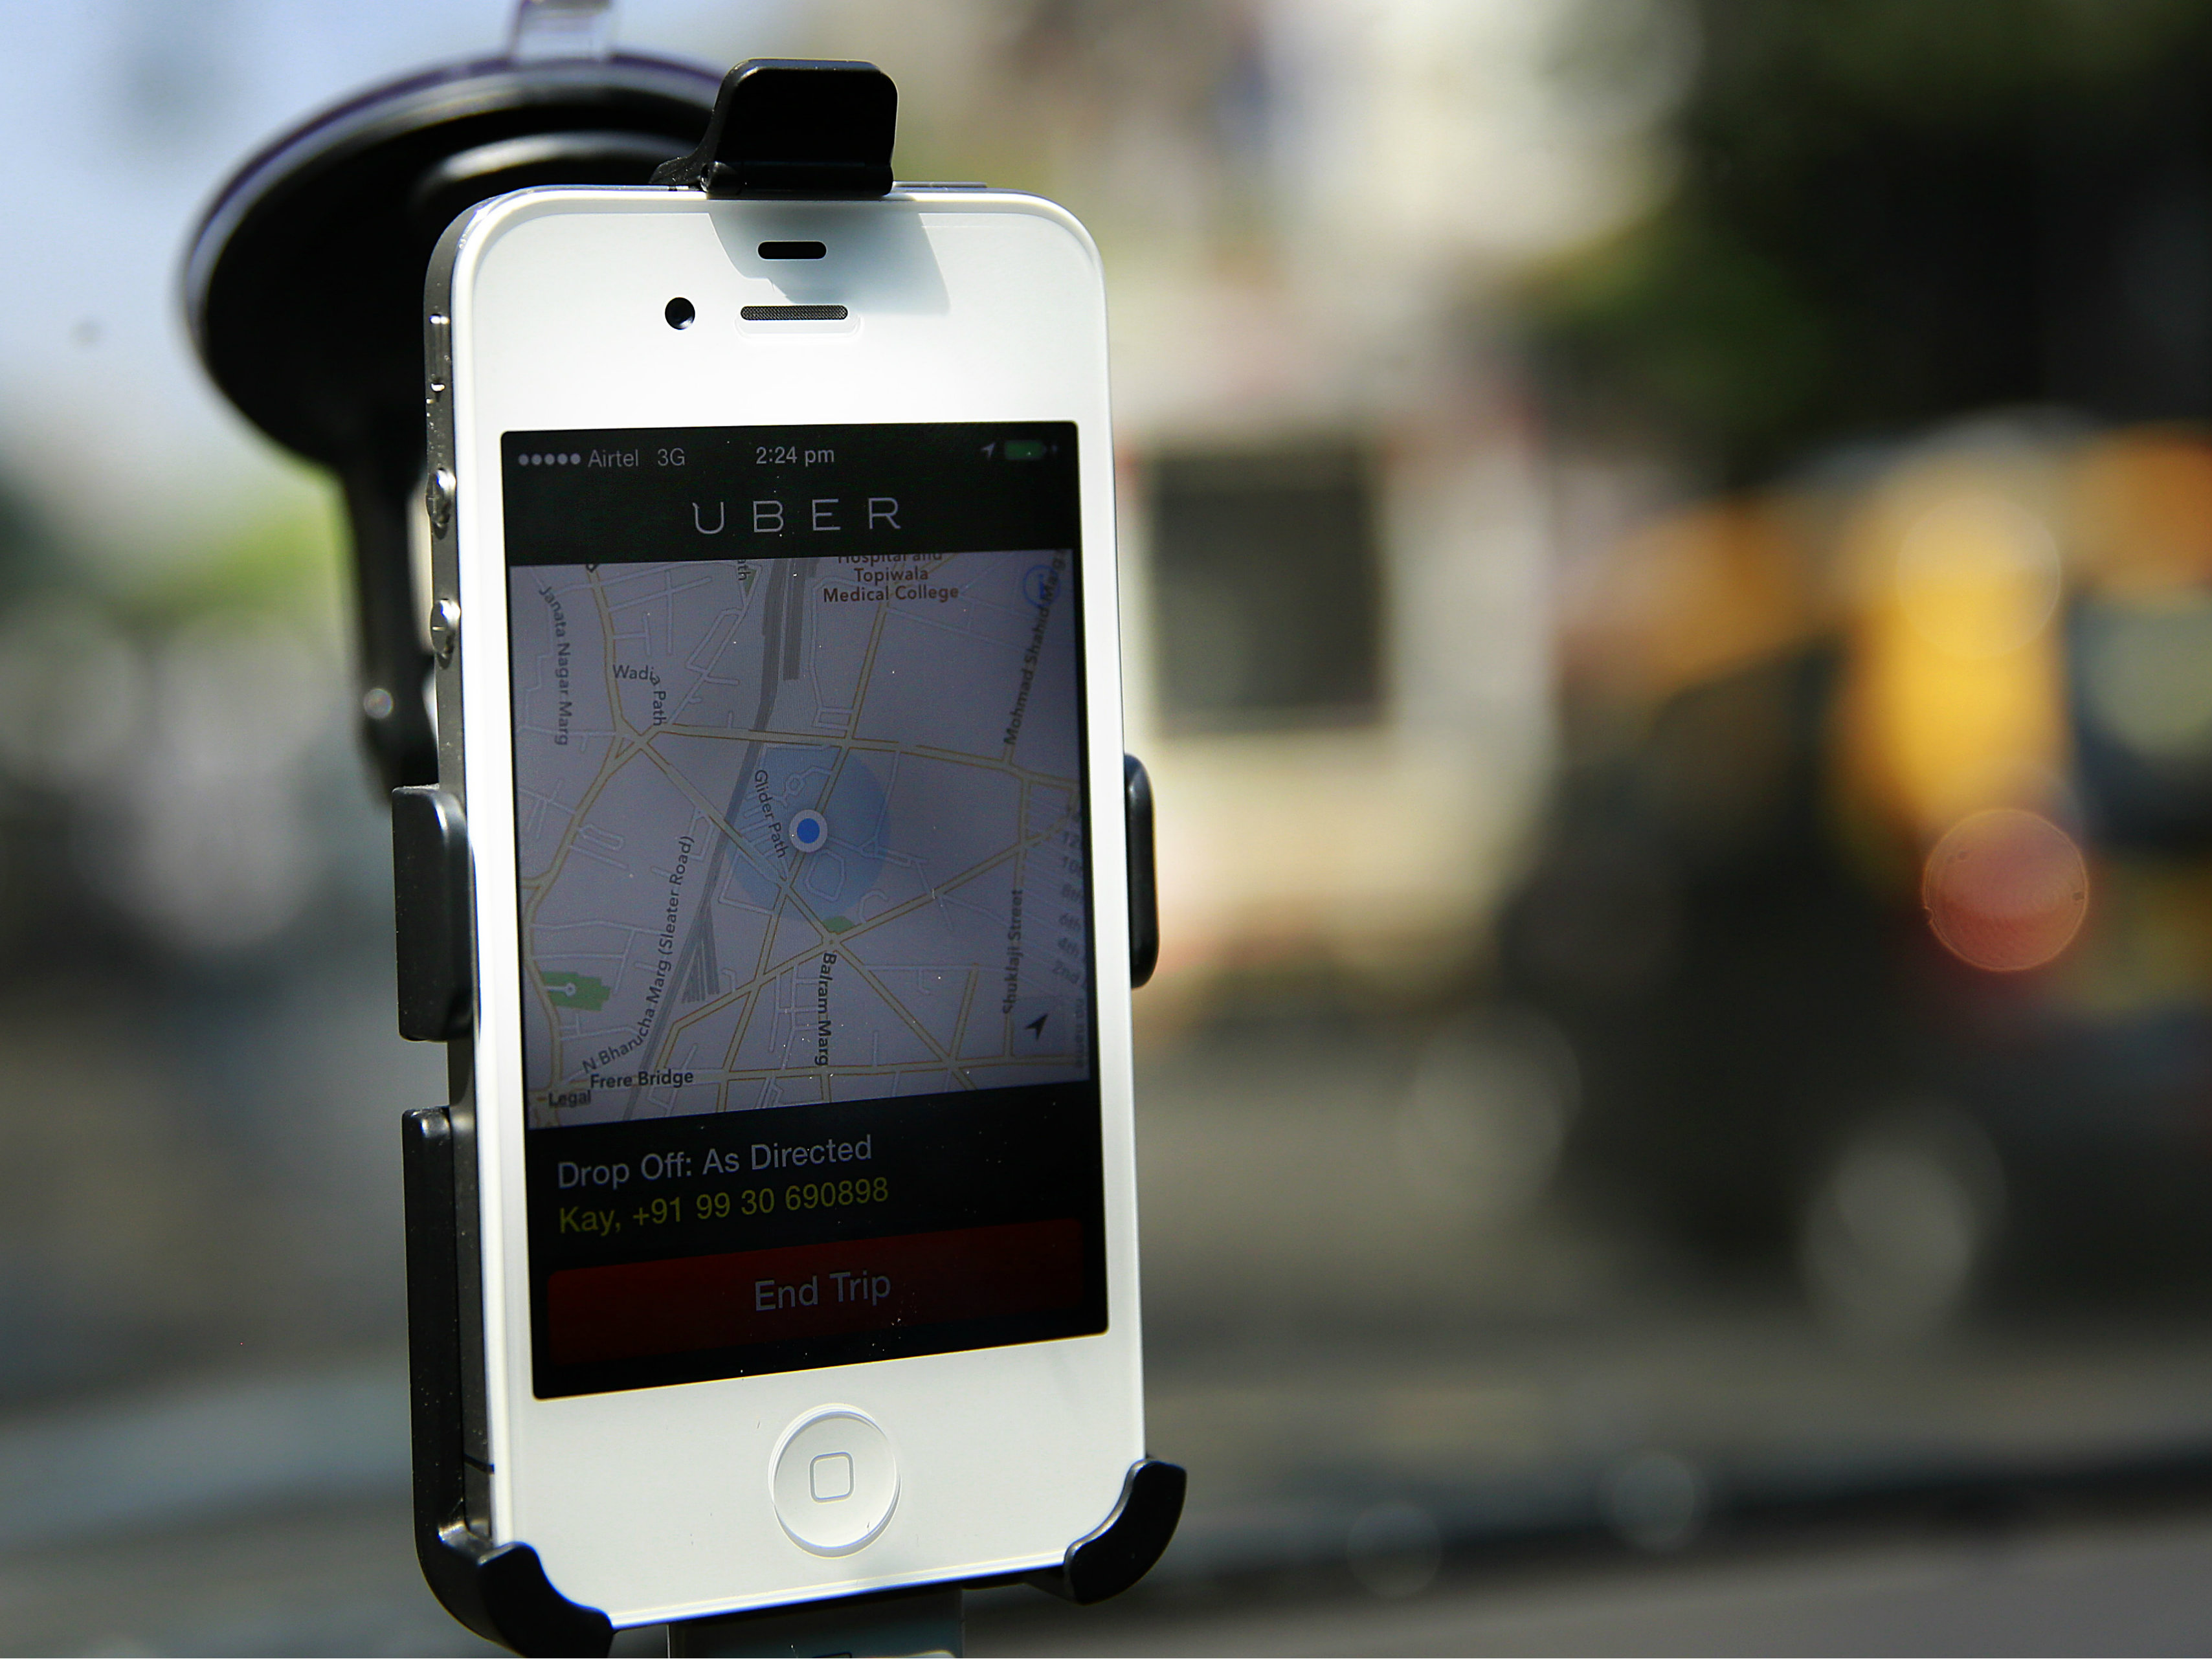 <p>In this April 3, 2014 photo, a smartphone is mounted on the glass of an Uber car.</p>